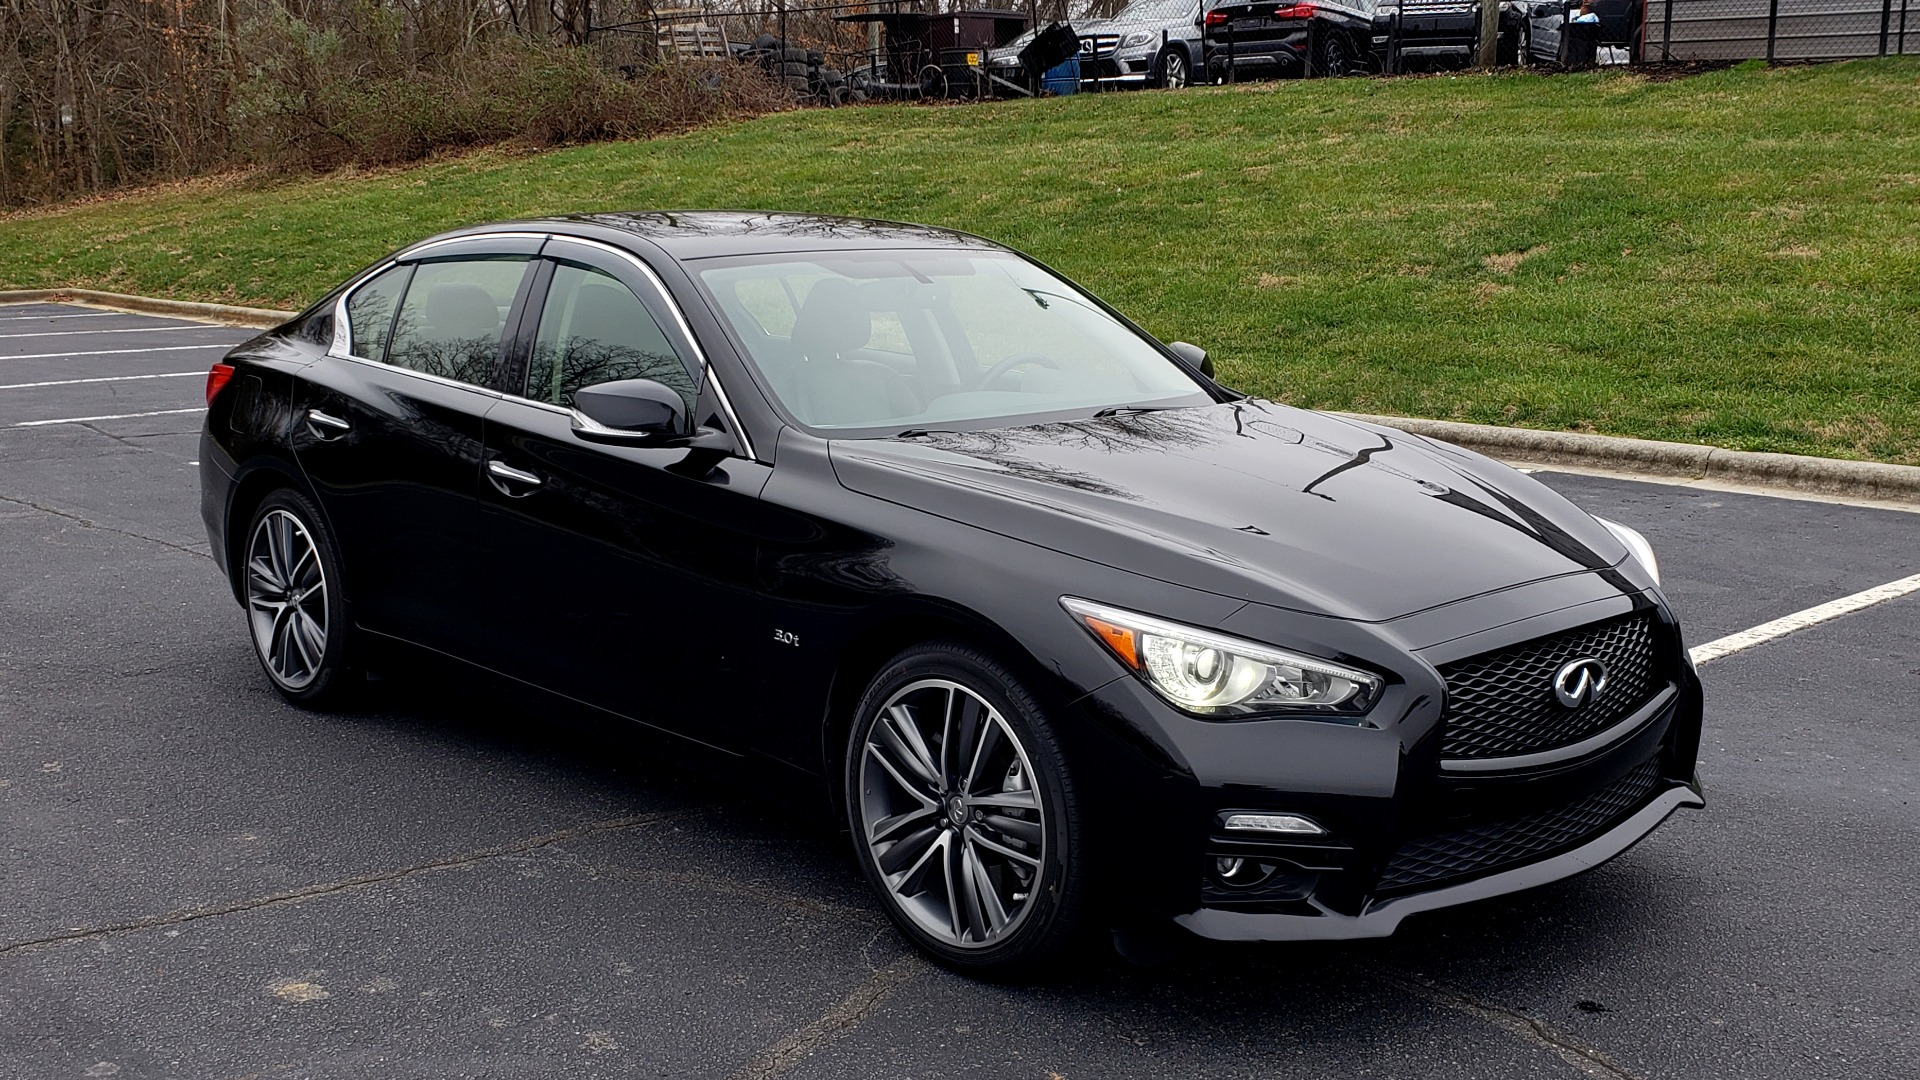 Used 2016 Infiniti Q50 3.0t PREMIUM SPORT AWD / NAV / SUNROOF / HTD STS / REARVIEW for sale Sold at Formula Imports in Charlotte NC 28227 10